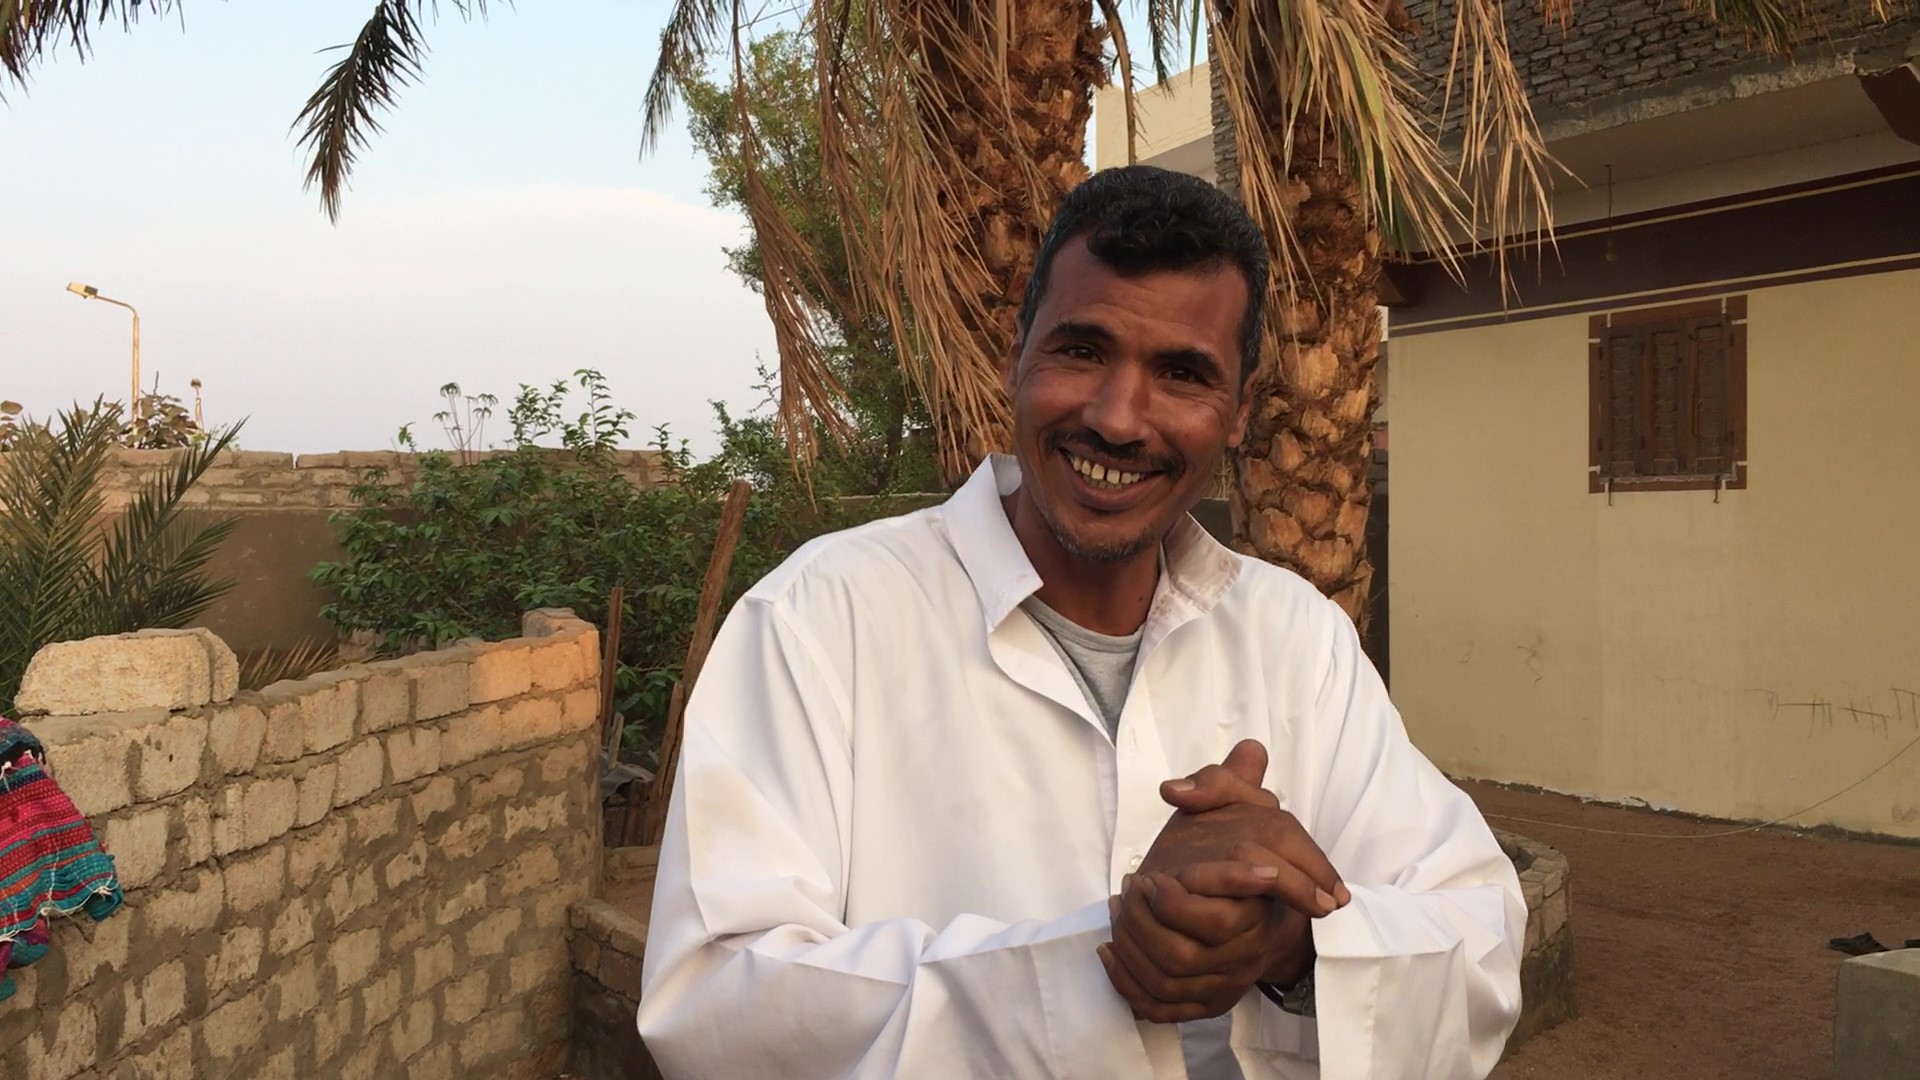 Bedouin Man Hemaid Of The Muzeina Tribe In Sinai Welcoming Viewers To A Tour Of His Enclave